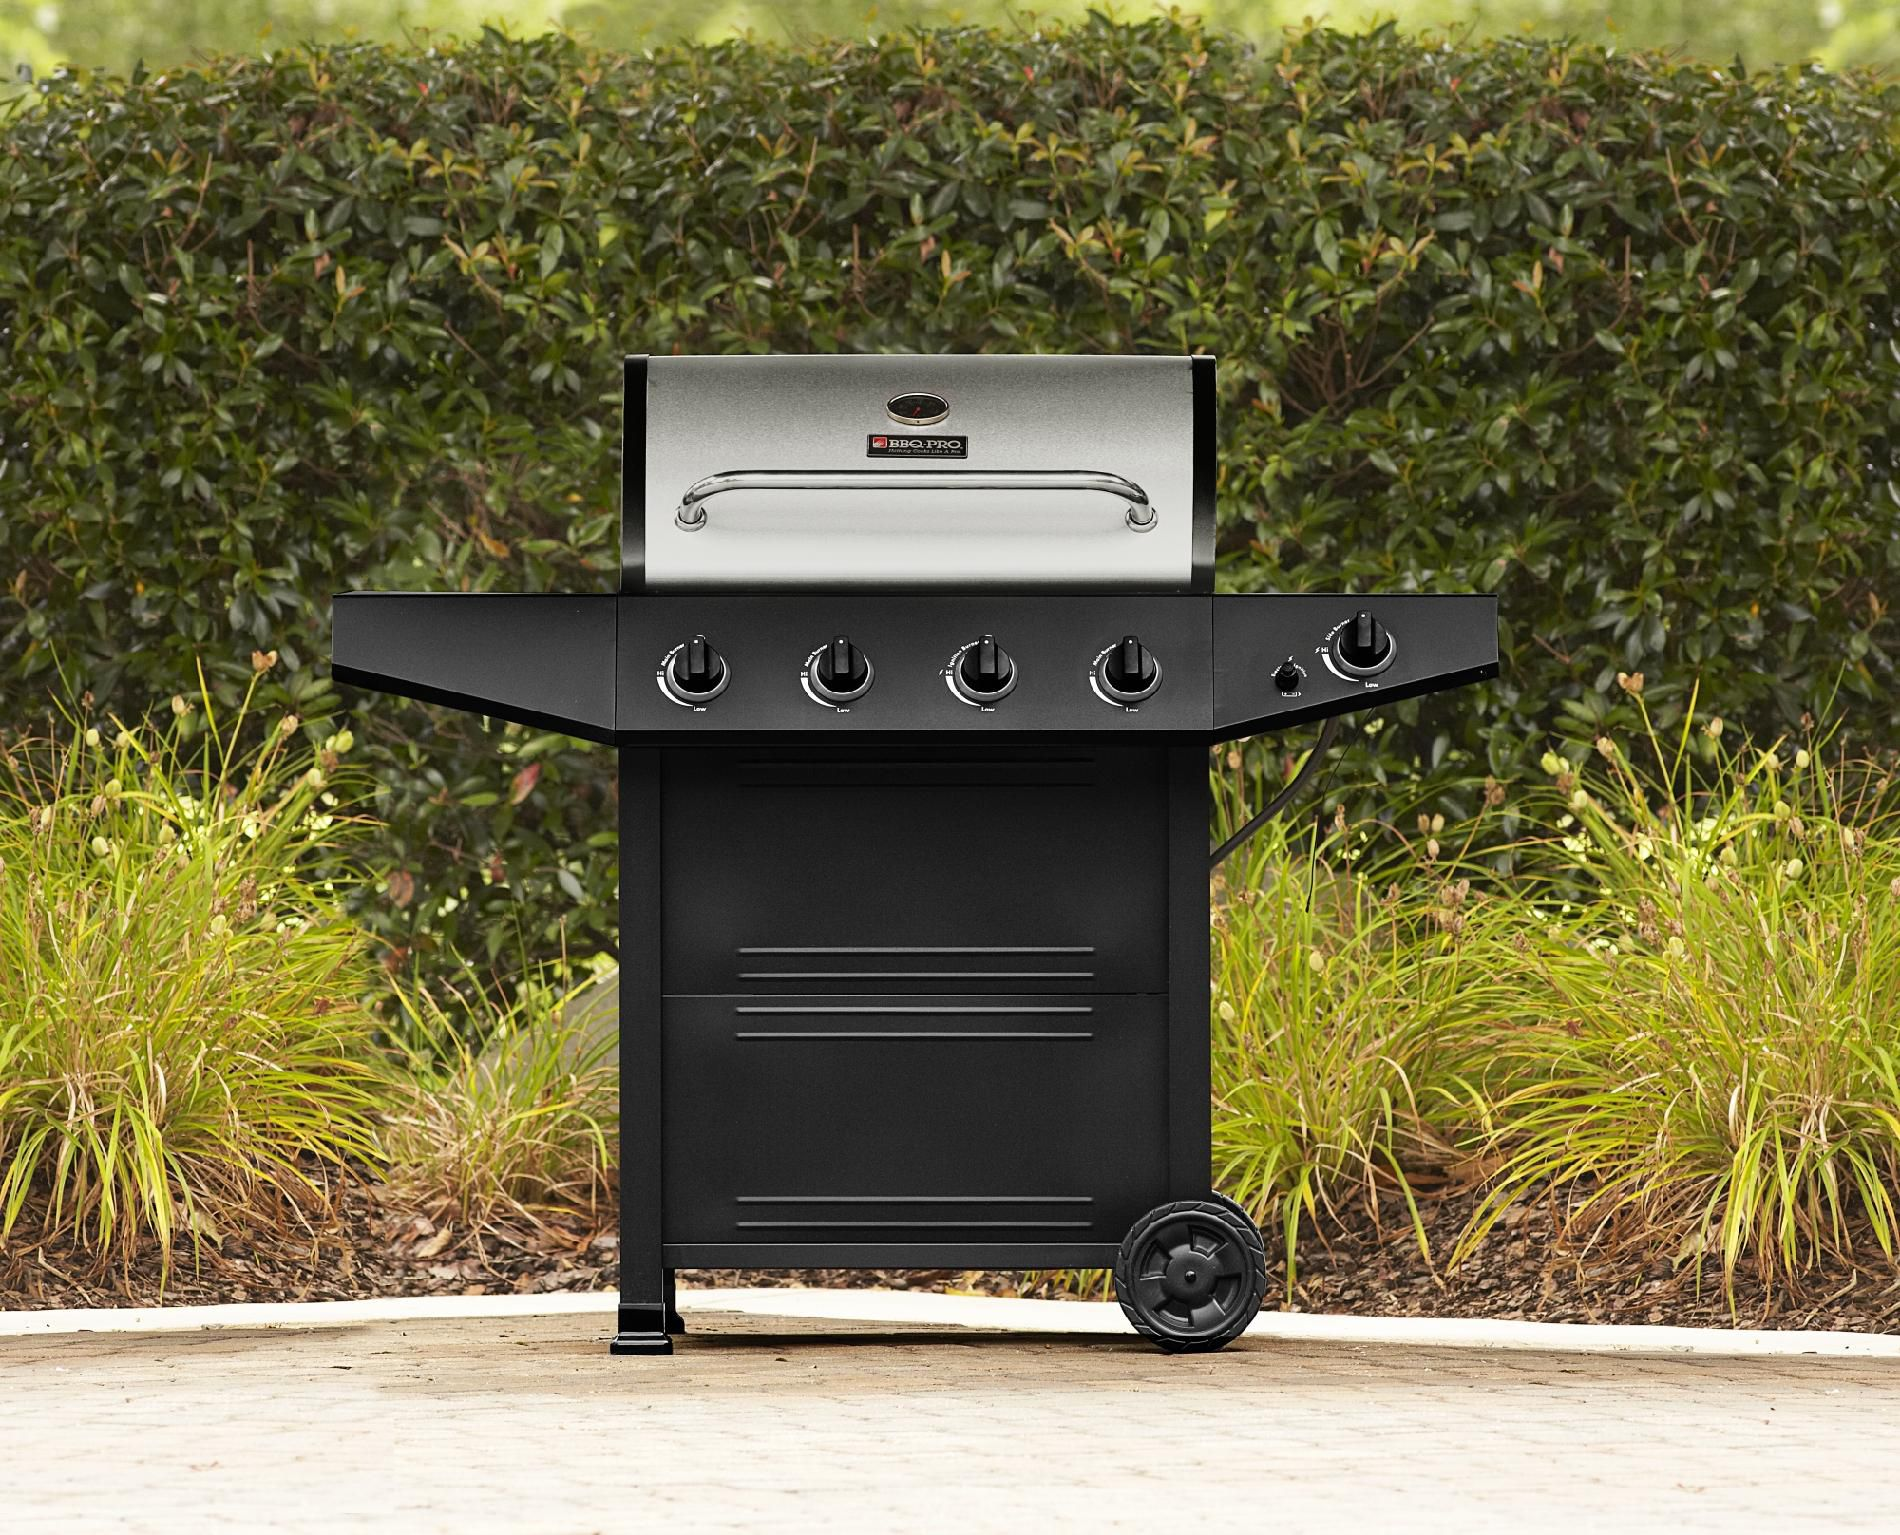 BBQ Pro 4 Burner Gas Grill with Stainless Steel Lid